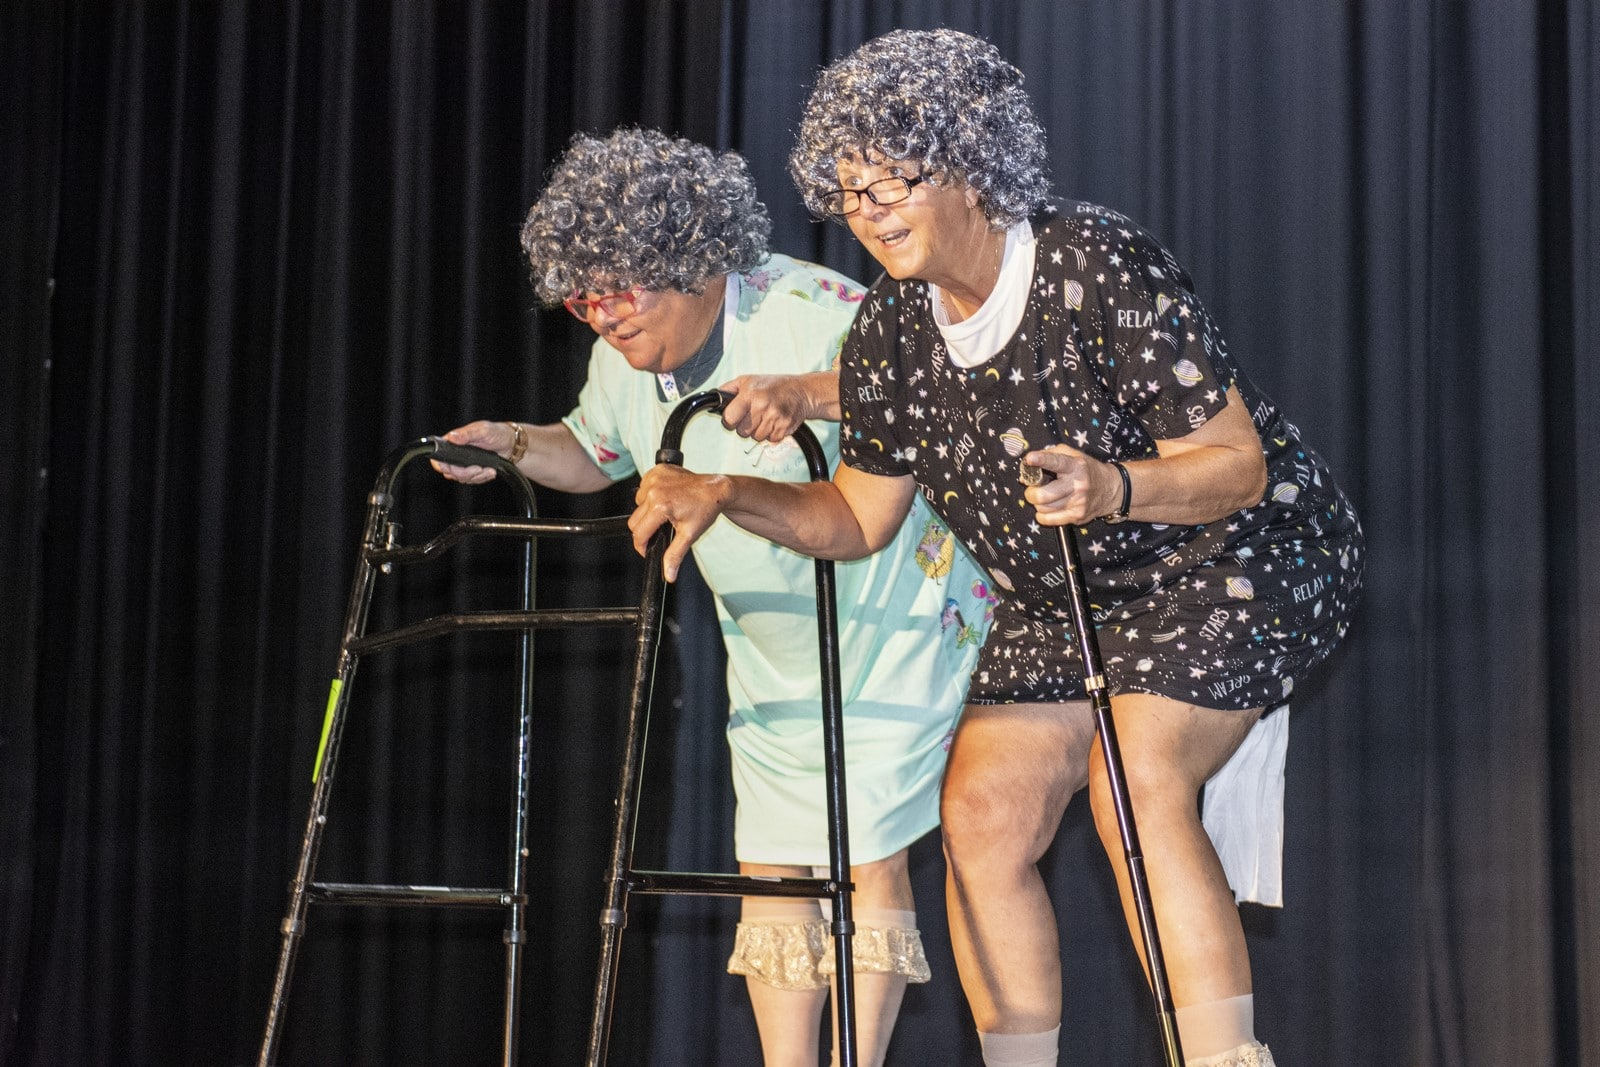 Camp staff dress up as the elderly in nightgowns and gray wigs